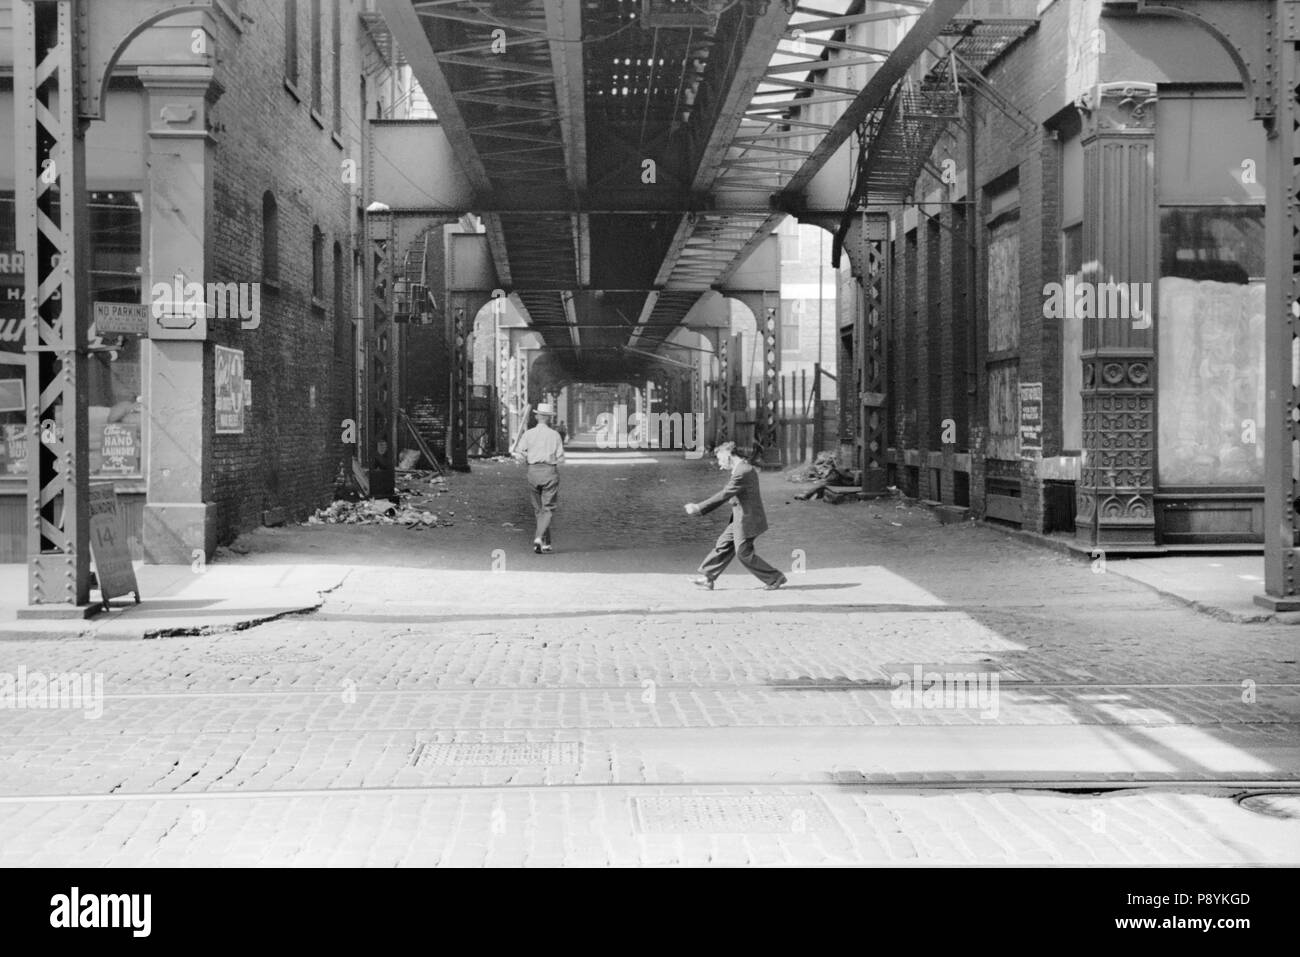 Alley and Elevated Train Tracks, Chicago, Illinois, USA, John Vachon, Farm Security Administration, July 1940 - Stock Image